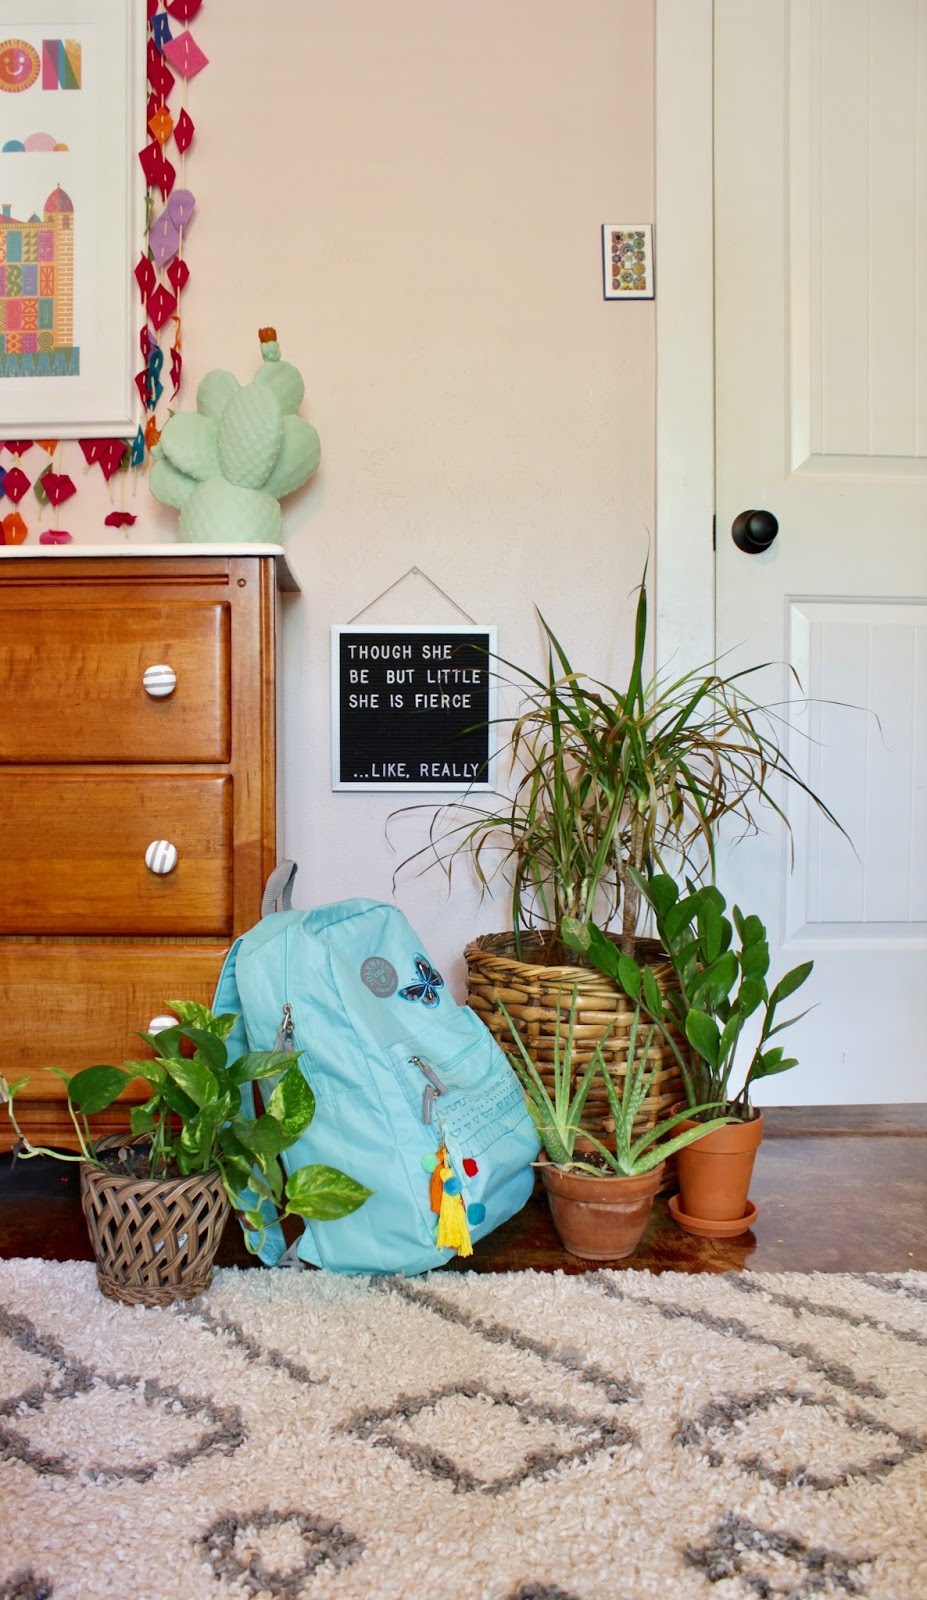 DIY backpack decor. Such a fun project to do with your little.